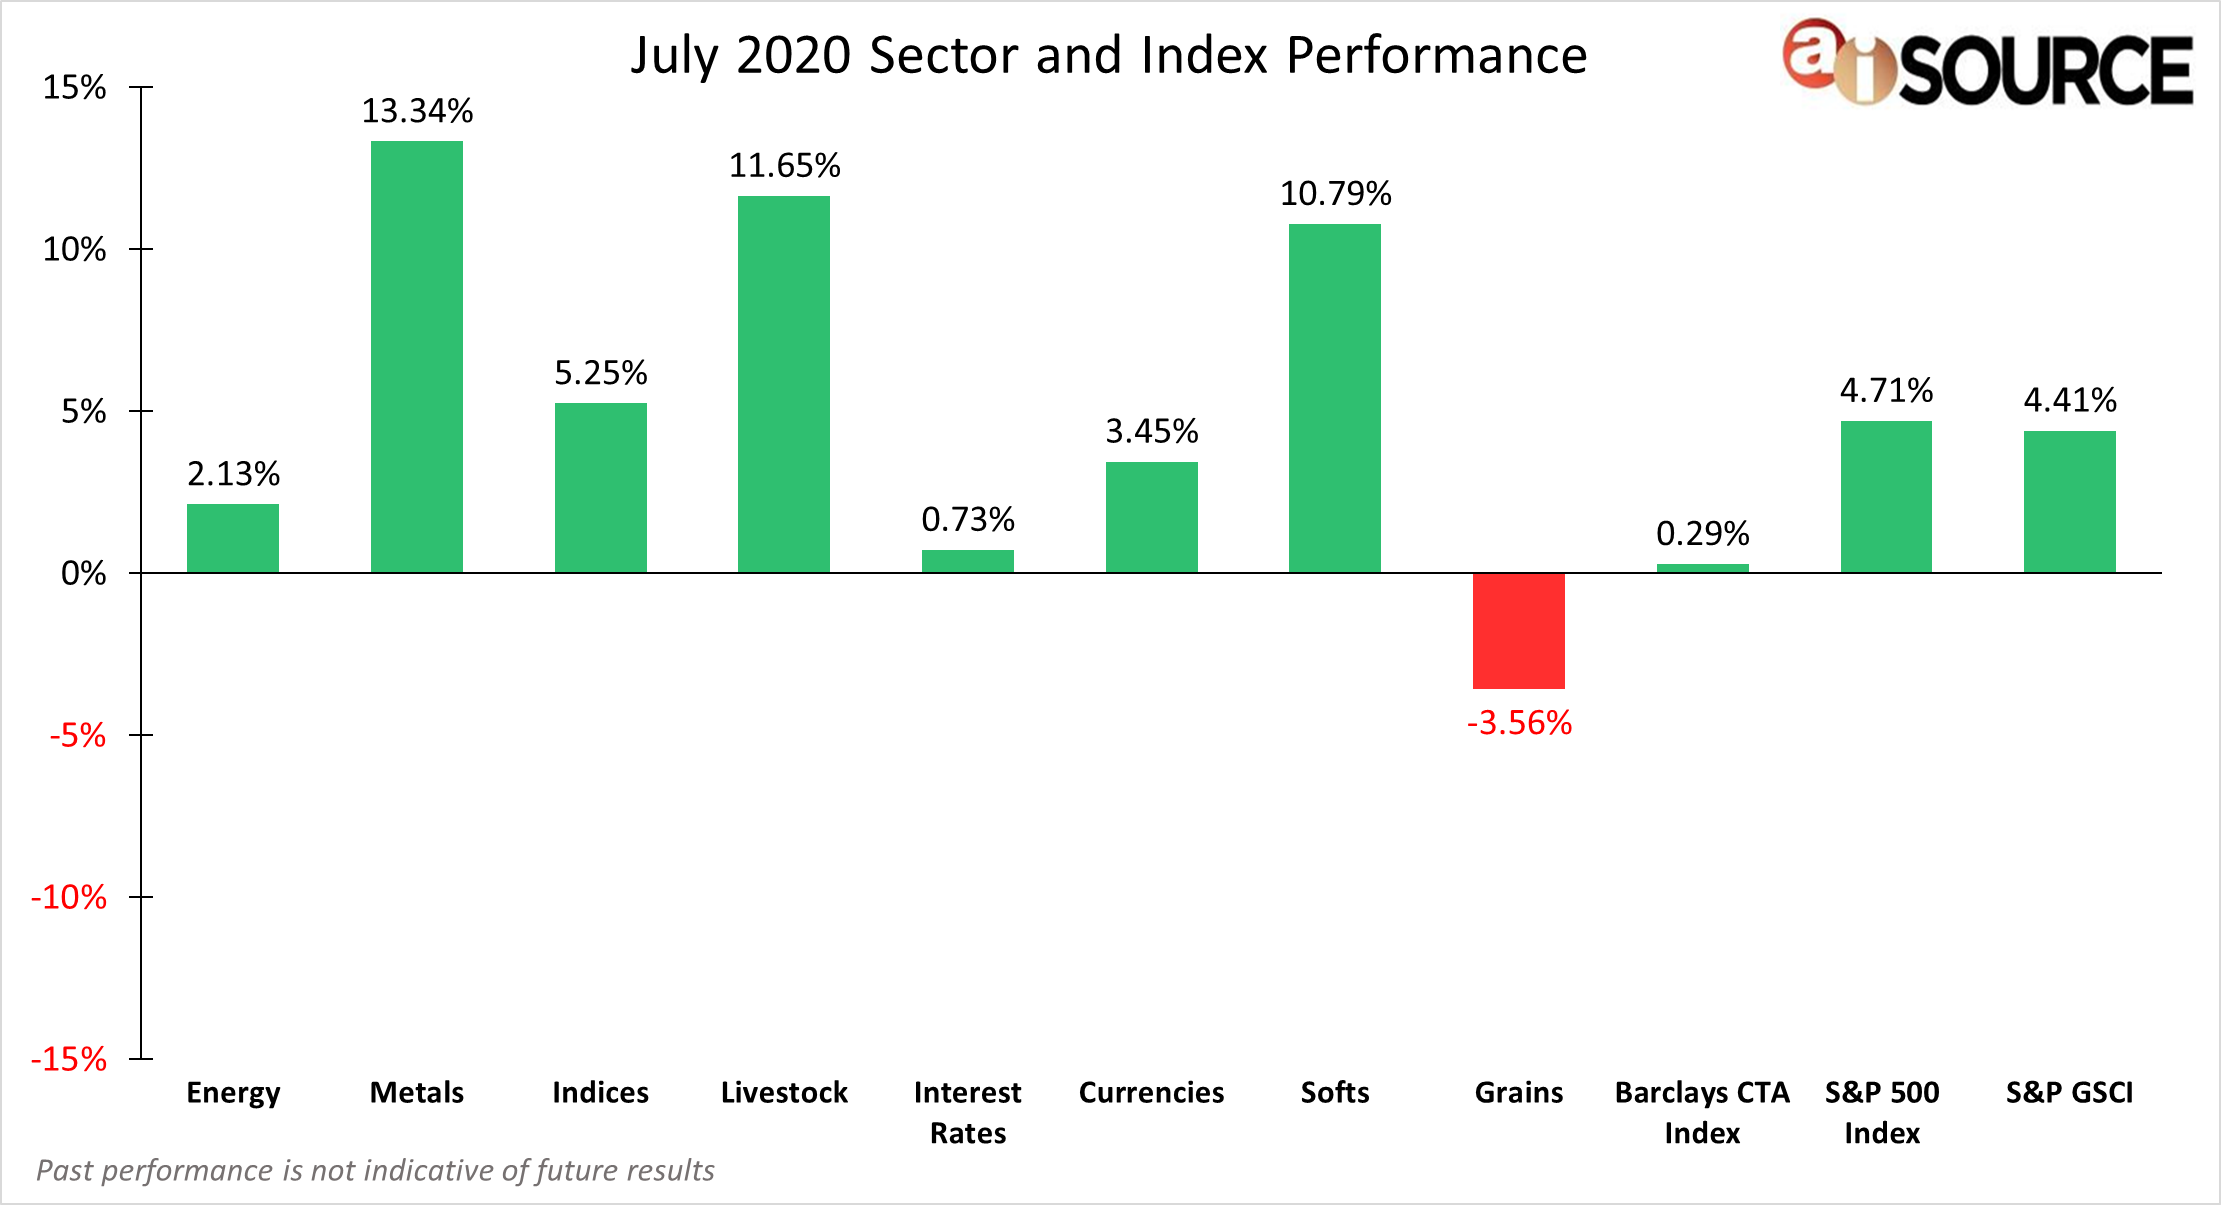 July 2020 Sector and Index Performance